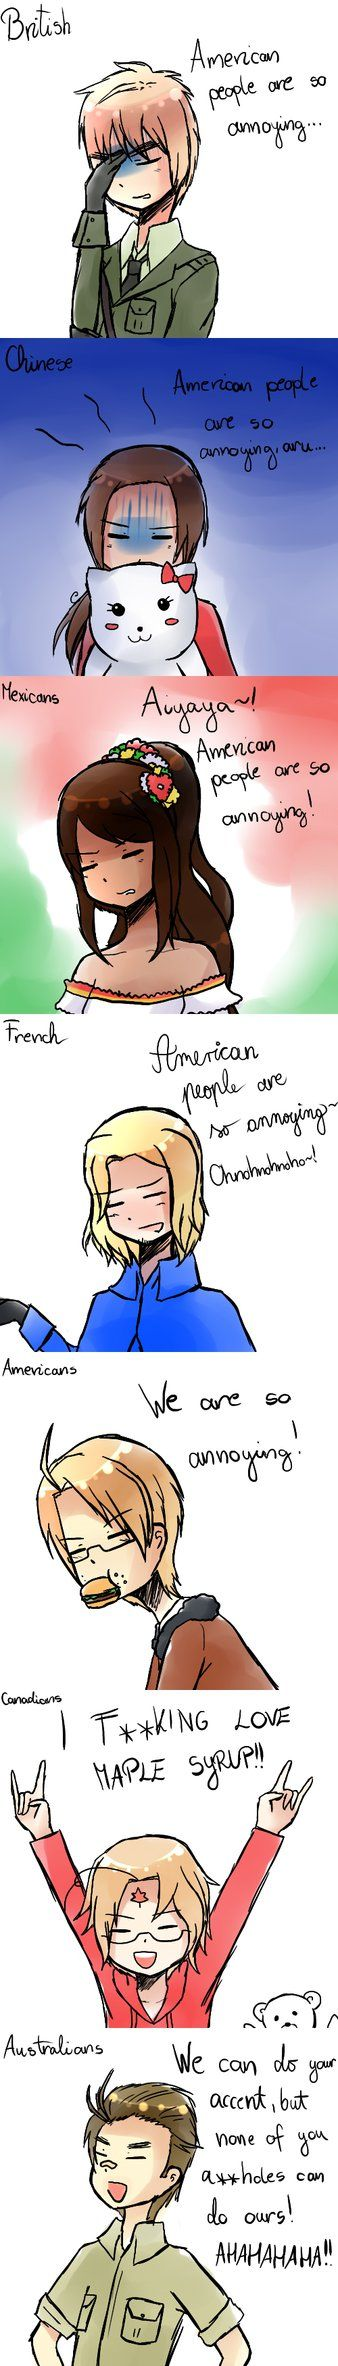 APH: Americans are so annoying... by CrazyRaiPie on deviantART